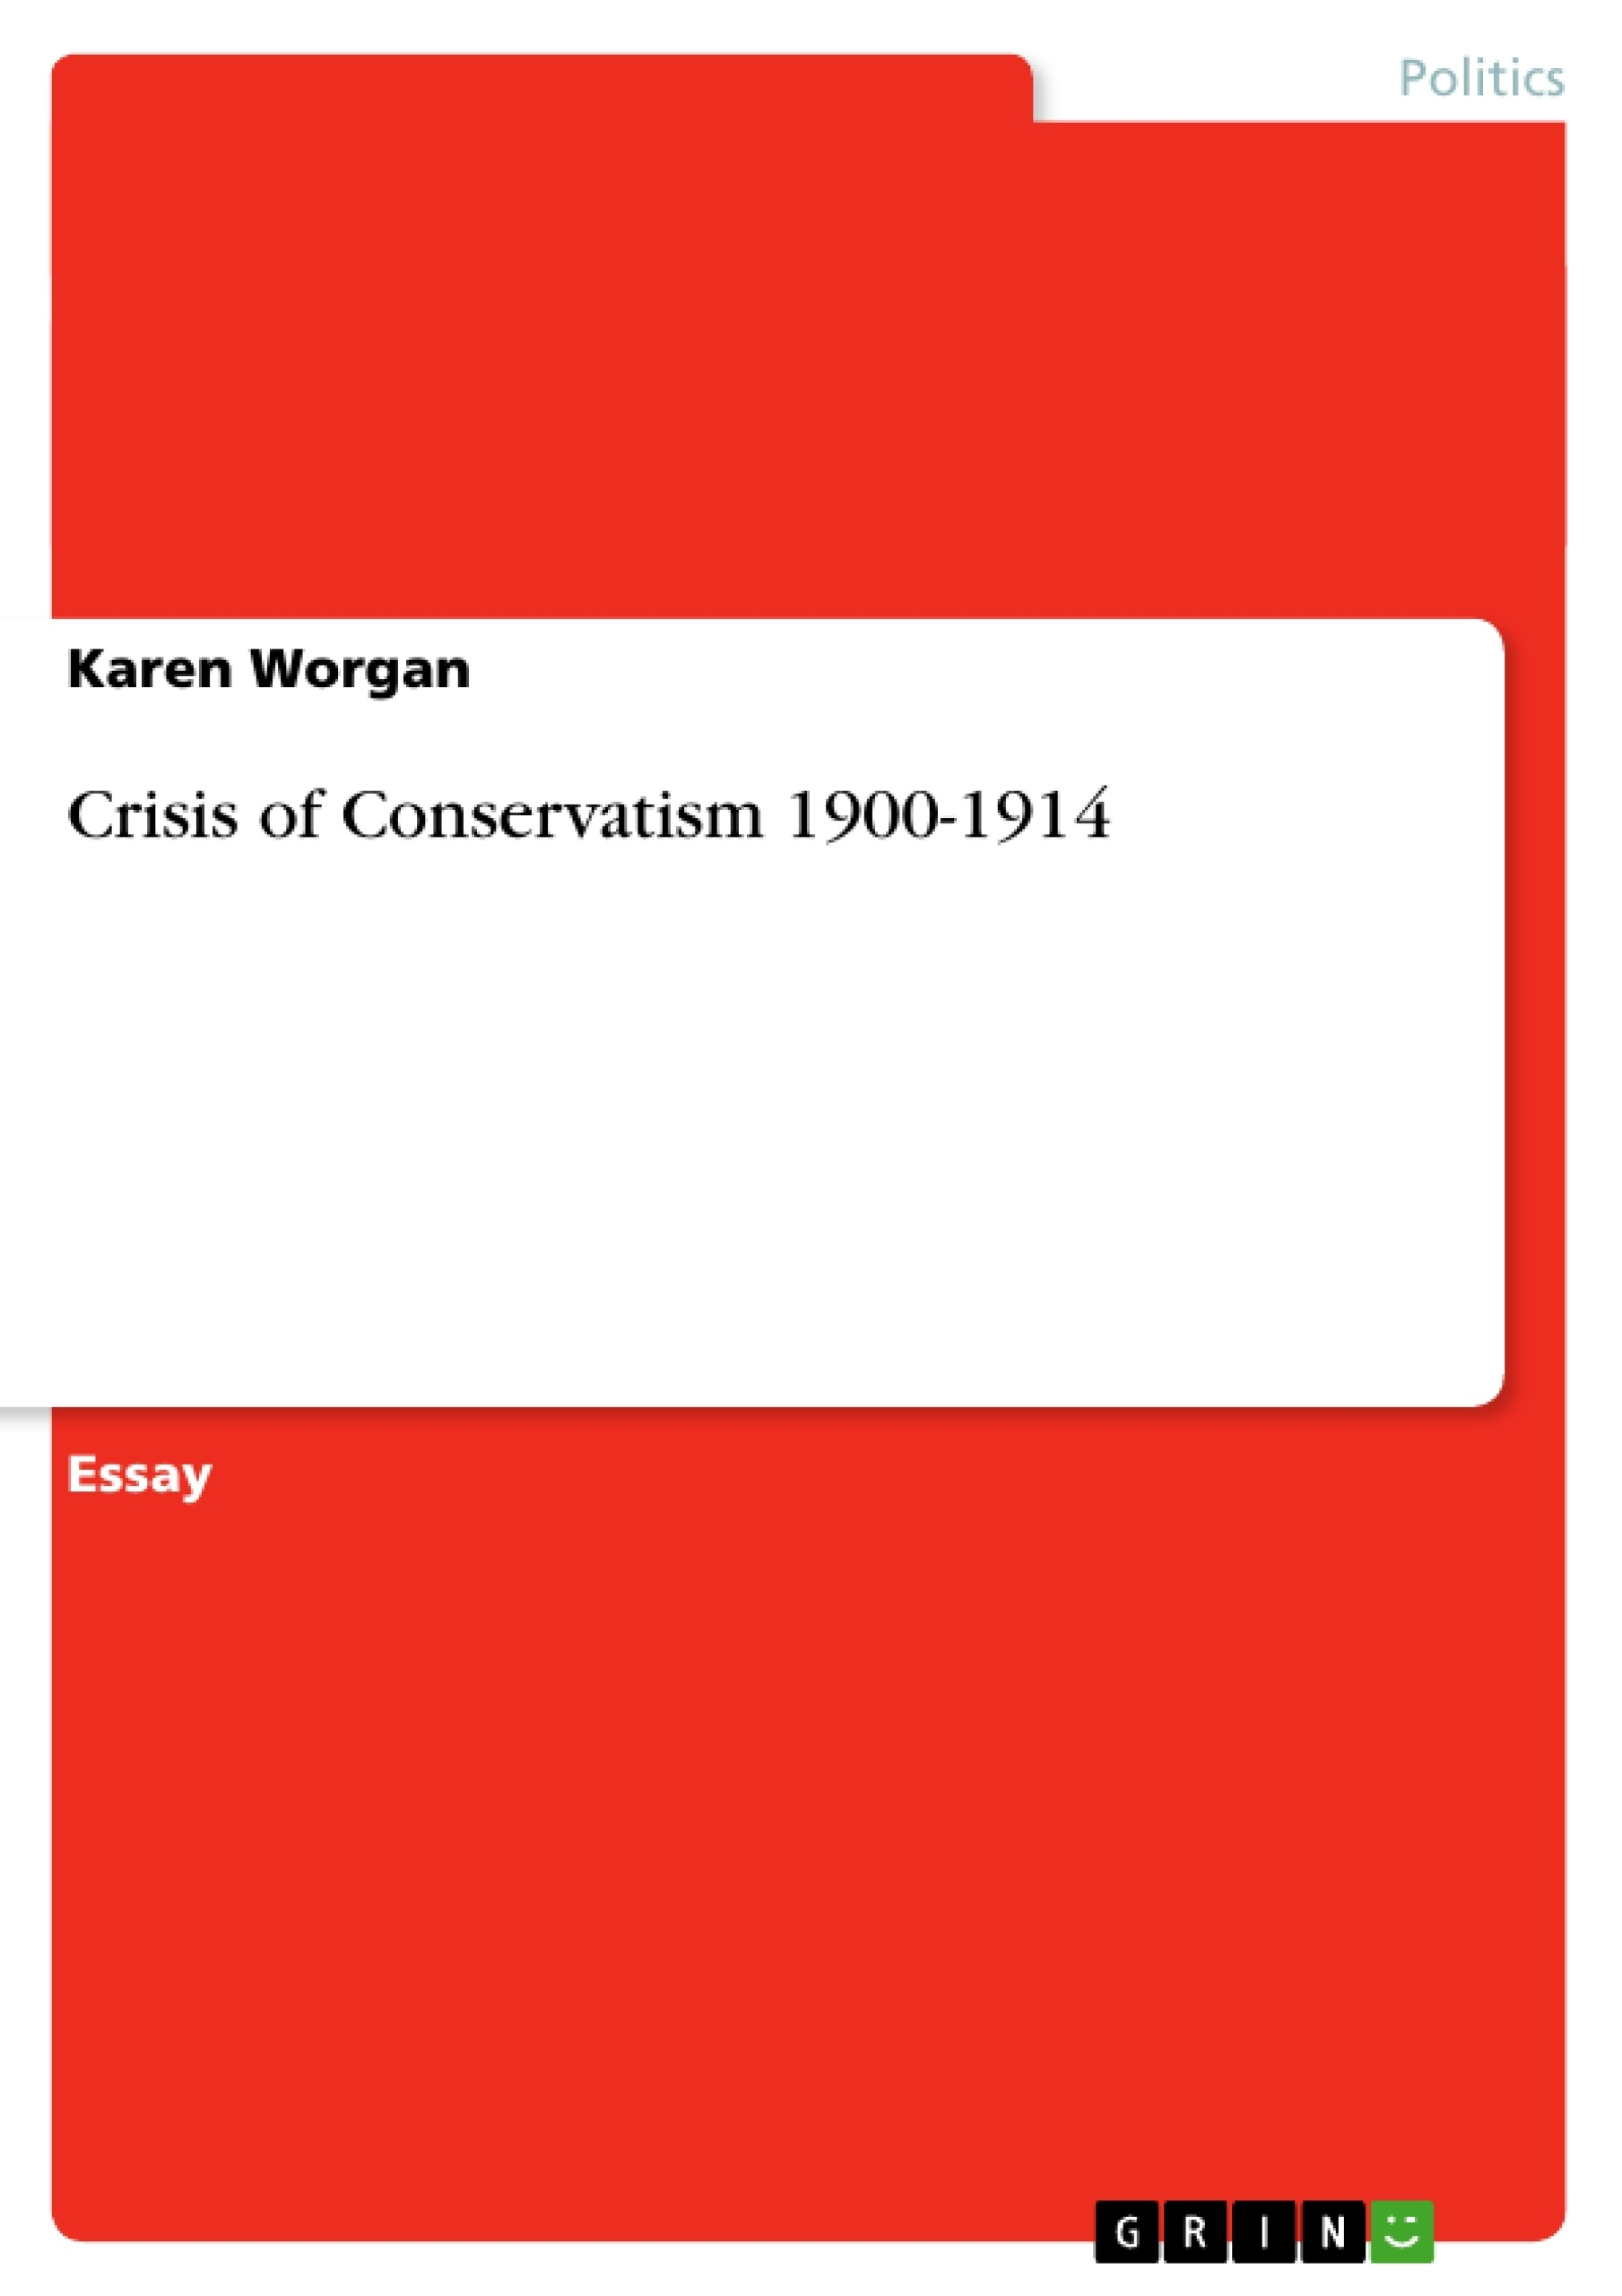 Title: Crisis of Conservatism 1900-1914